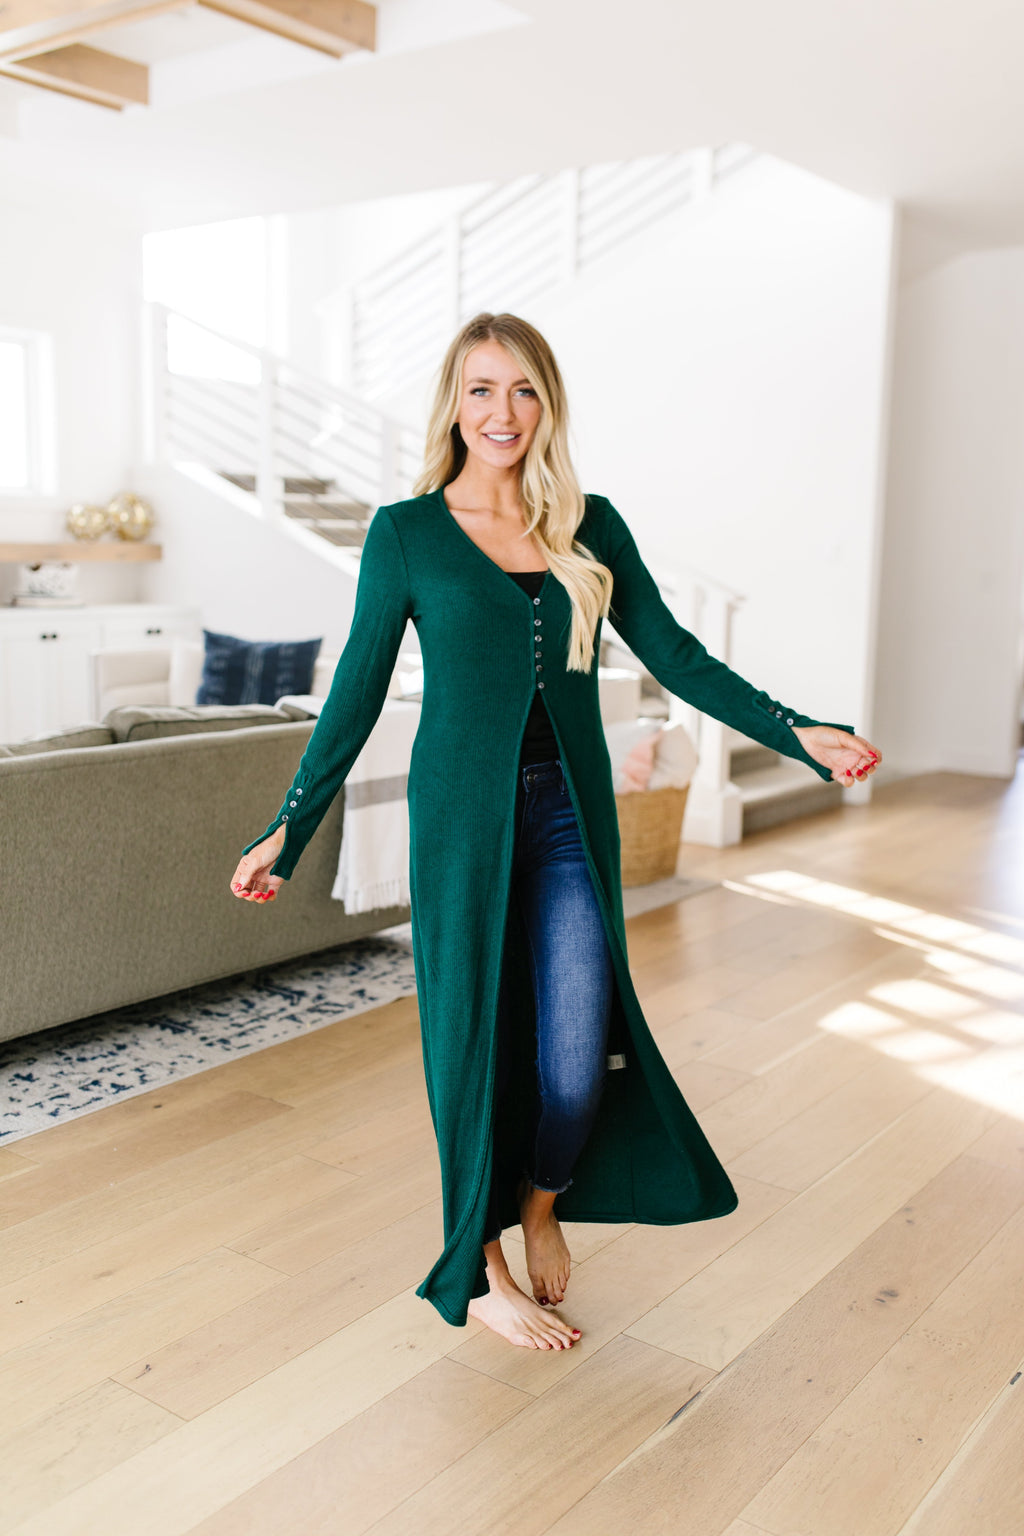 Maxi Cardi In Hunter Green-1-23-2020, BFCM2020, Final Few Friday, Group A, Group B, Group C, Plus, Sync, Tops-Womens Artisan USA American Made Clothing Accessories